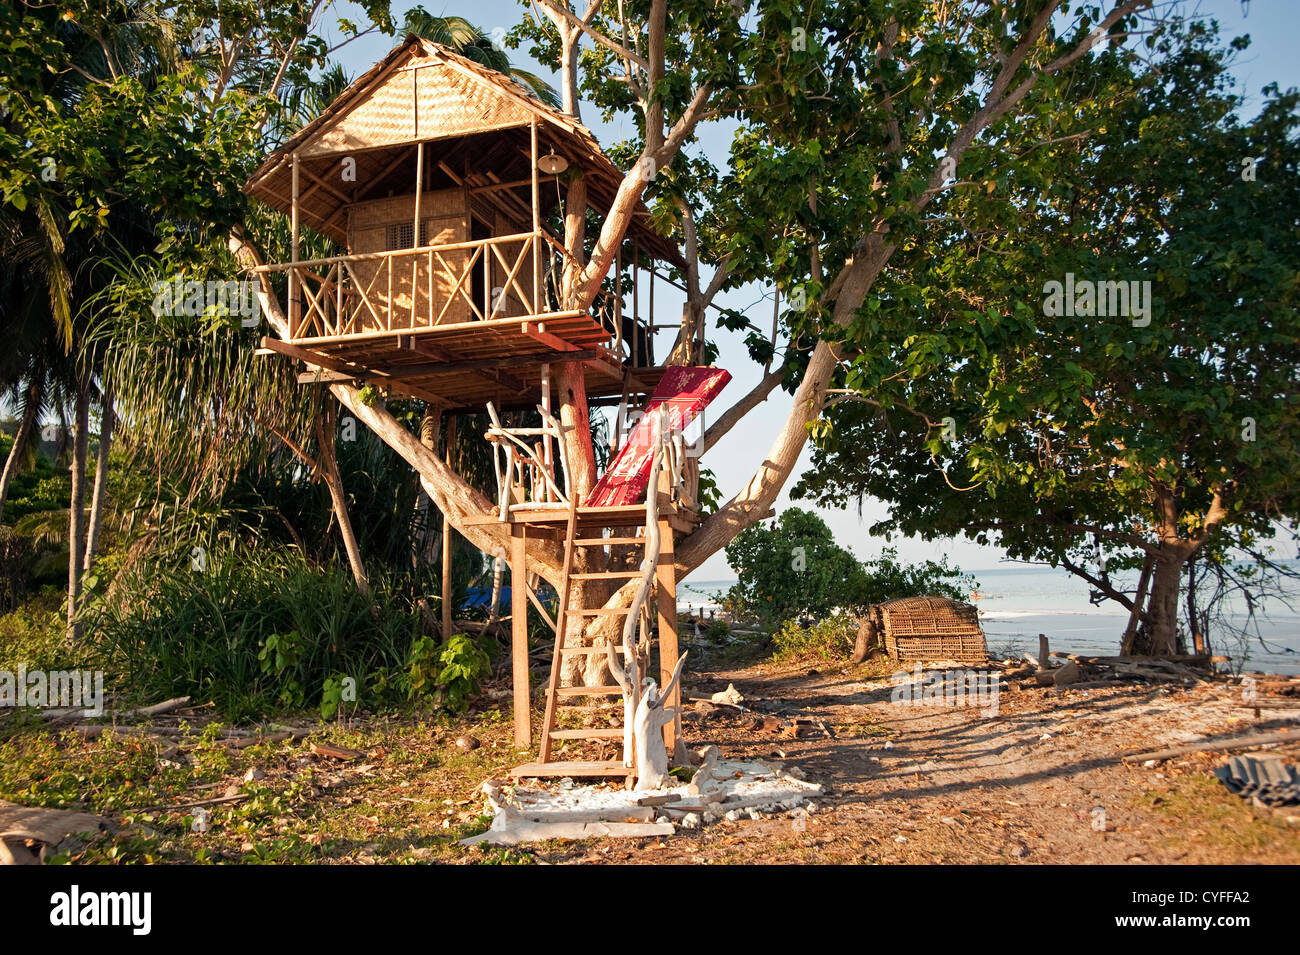 Tree house on Ara Beach Sulawesi Indonesia - Stock Image